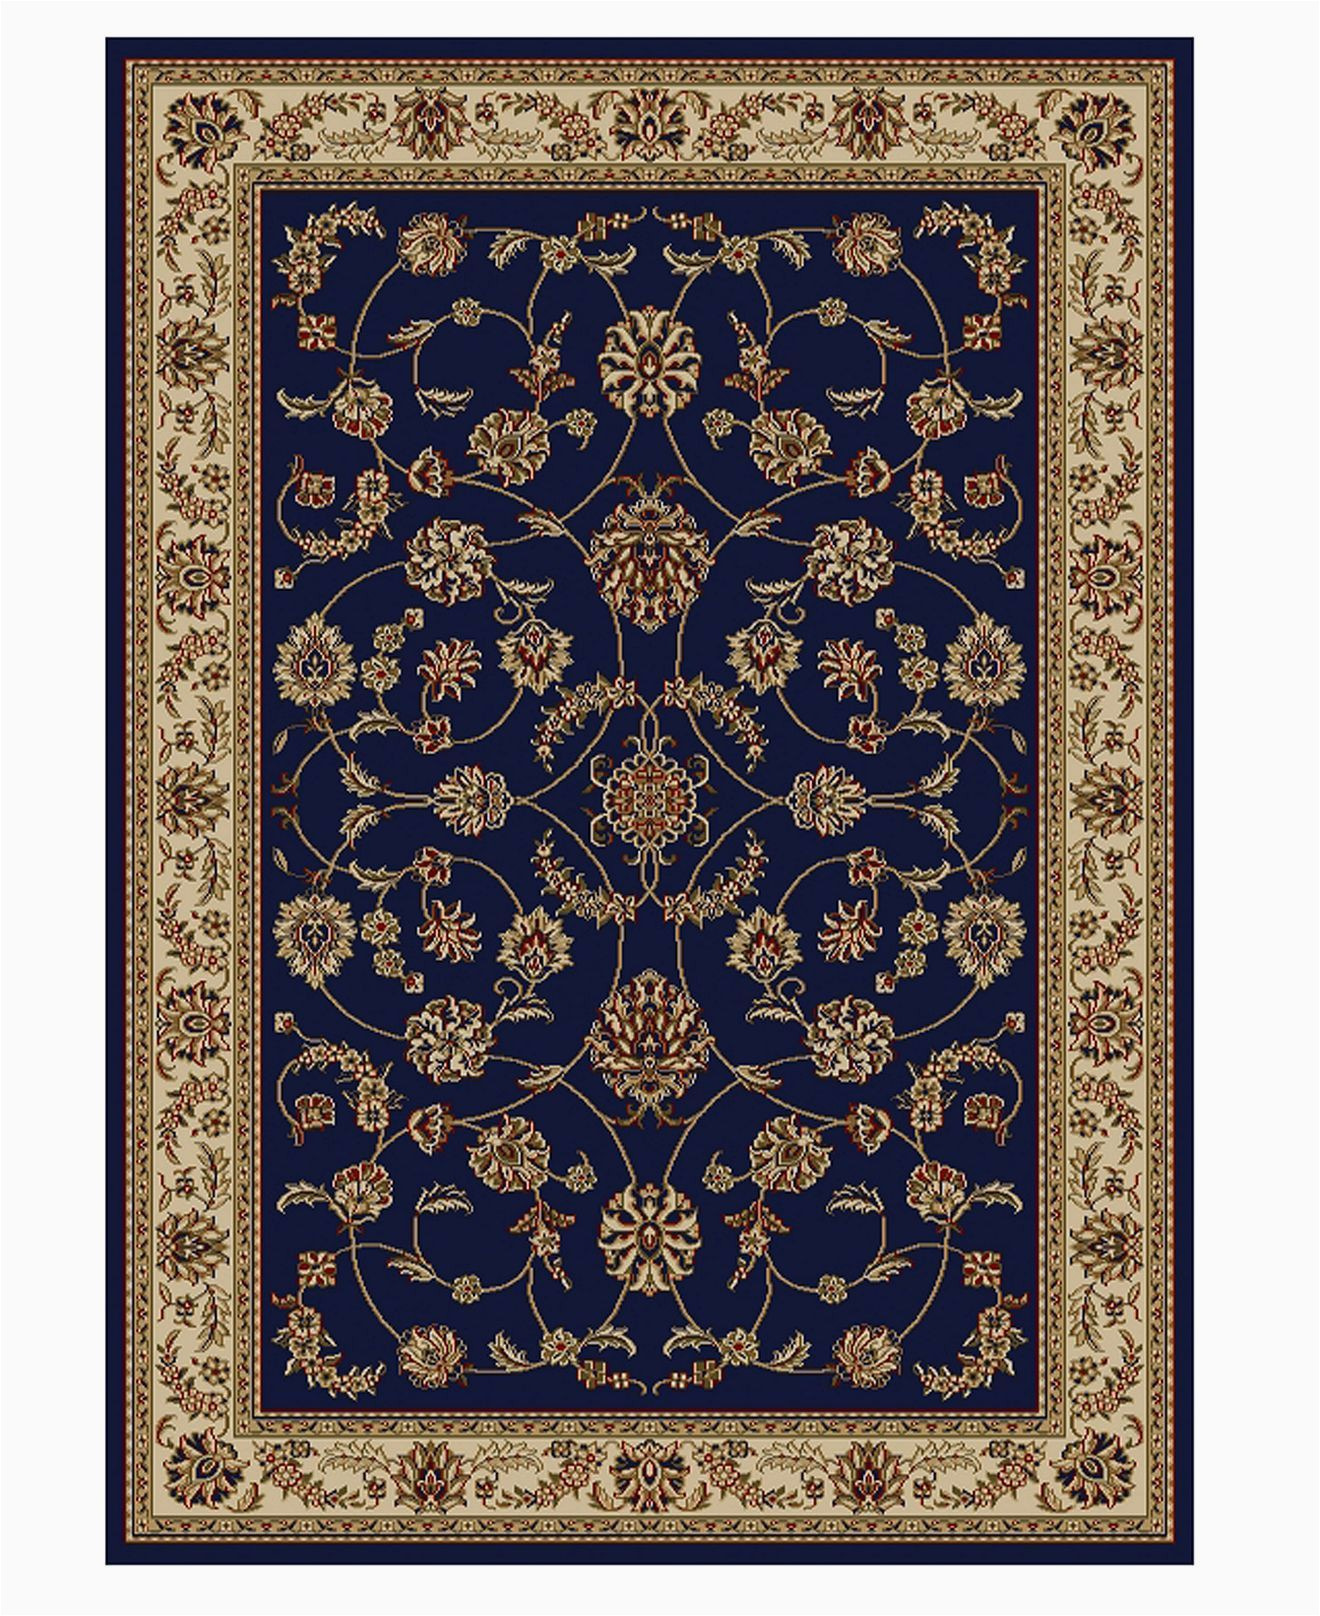 4 Piece area Rug Sets Kenneth Mink area Rug Set Florence Collection 4 Pc Set